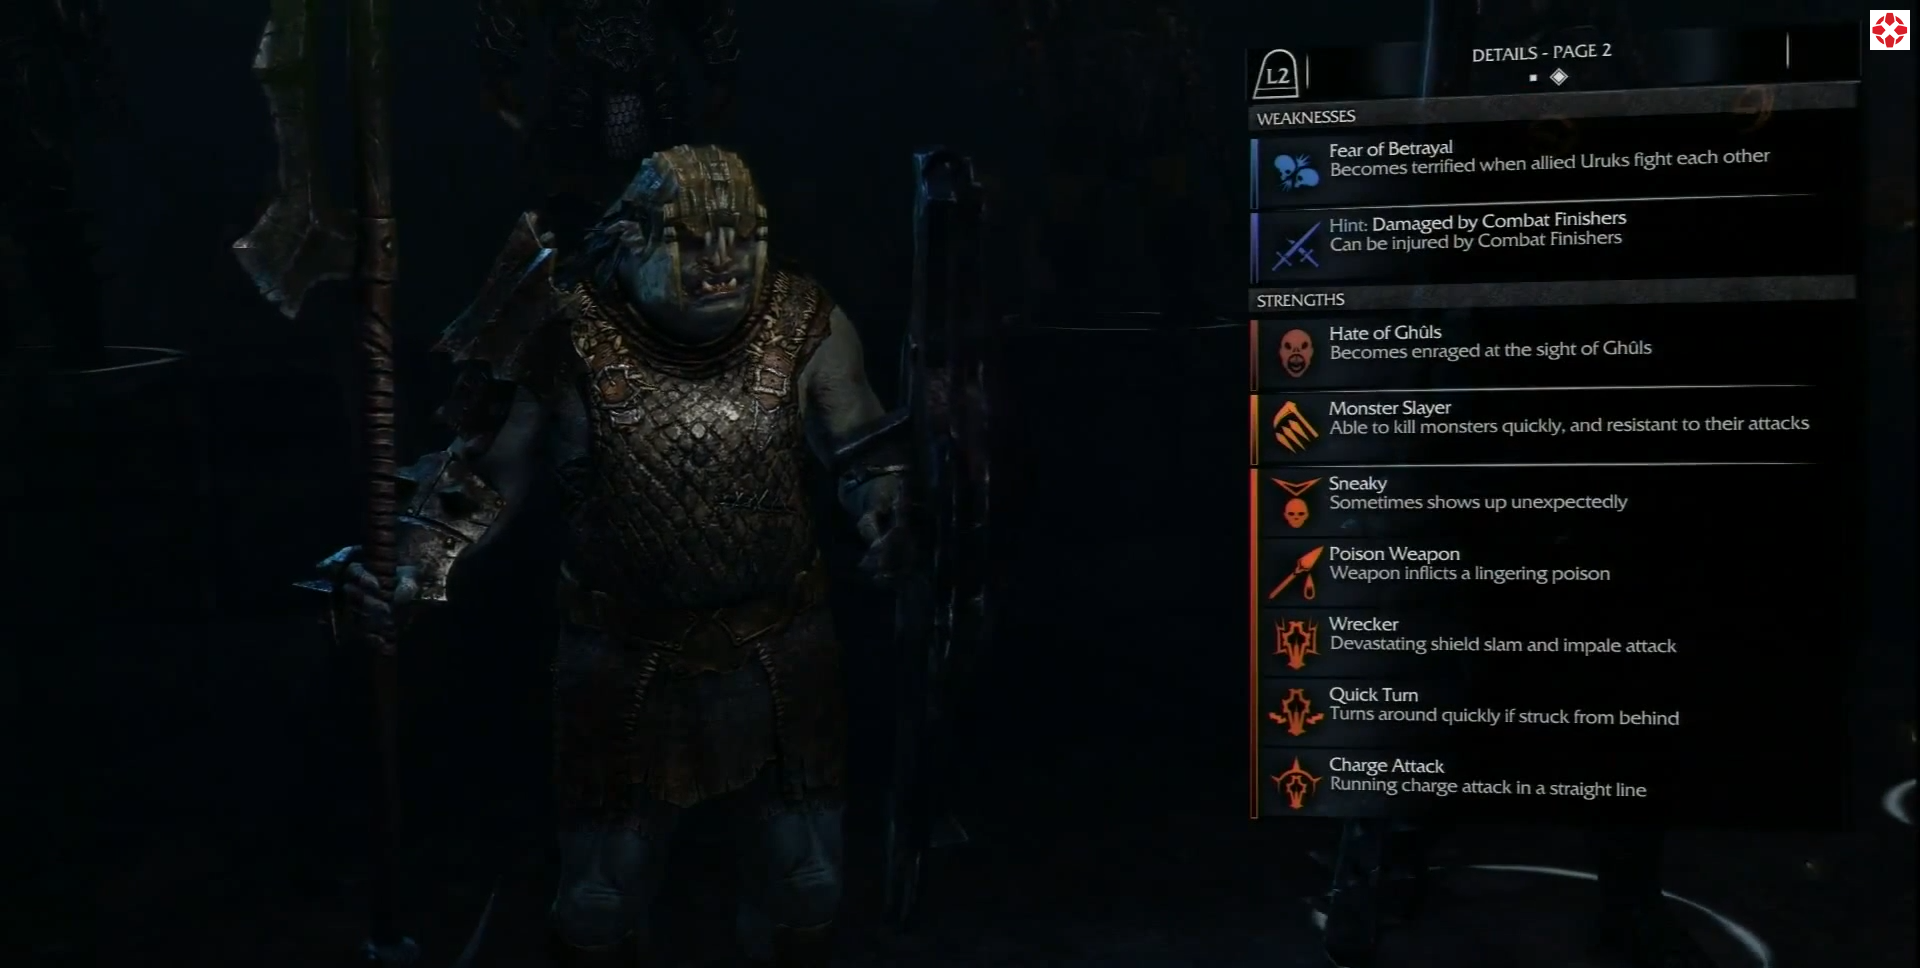 Middle-earth: Shadow of Mordor Weaknesses_page